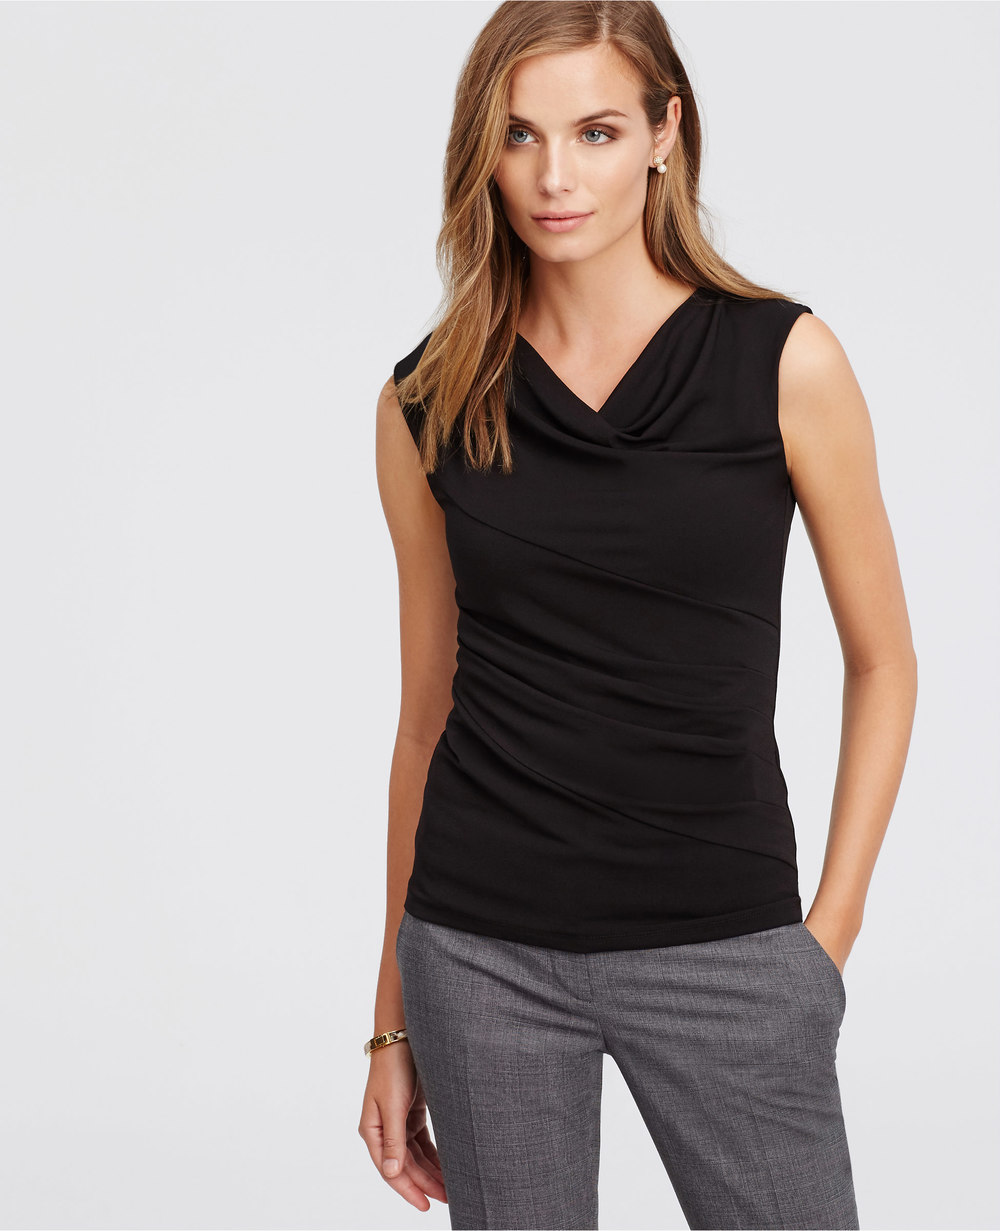 Crepe Drape Neck Top. Ann Taylor. Was: $49 Now: $34 Additional 50% off taken at checkout. Low inventory.